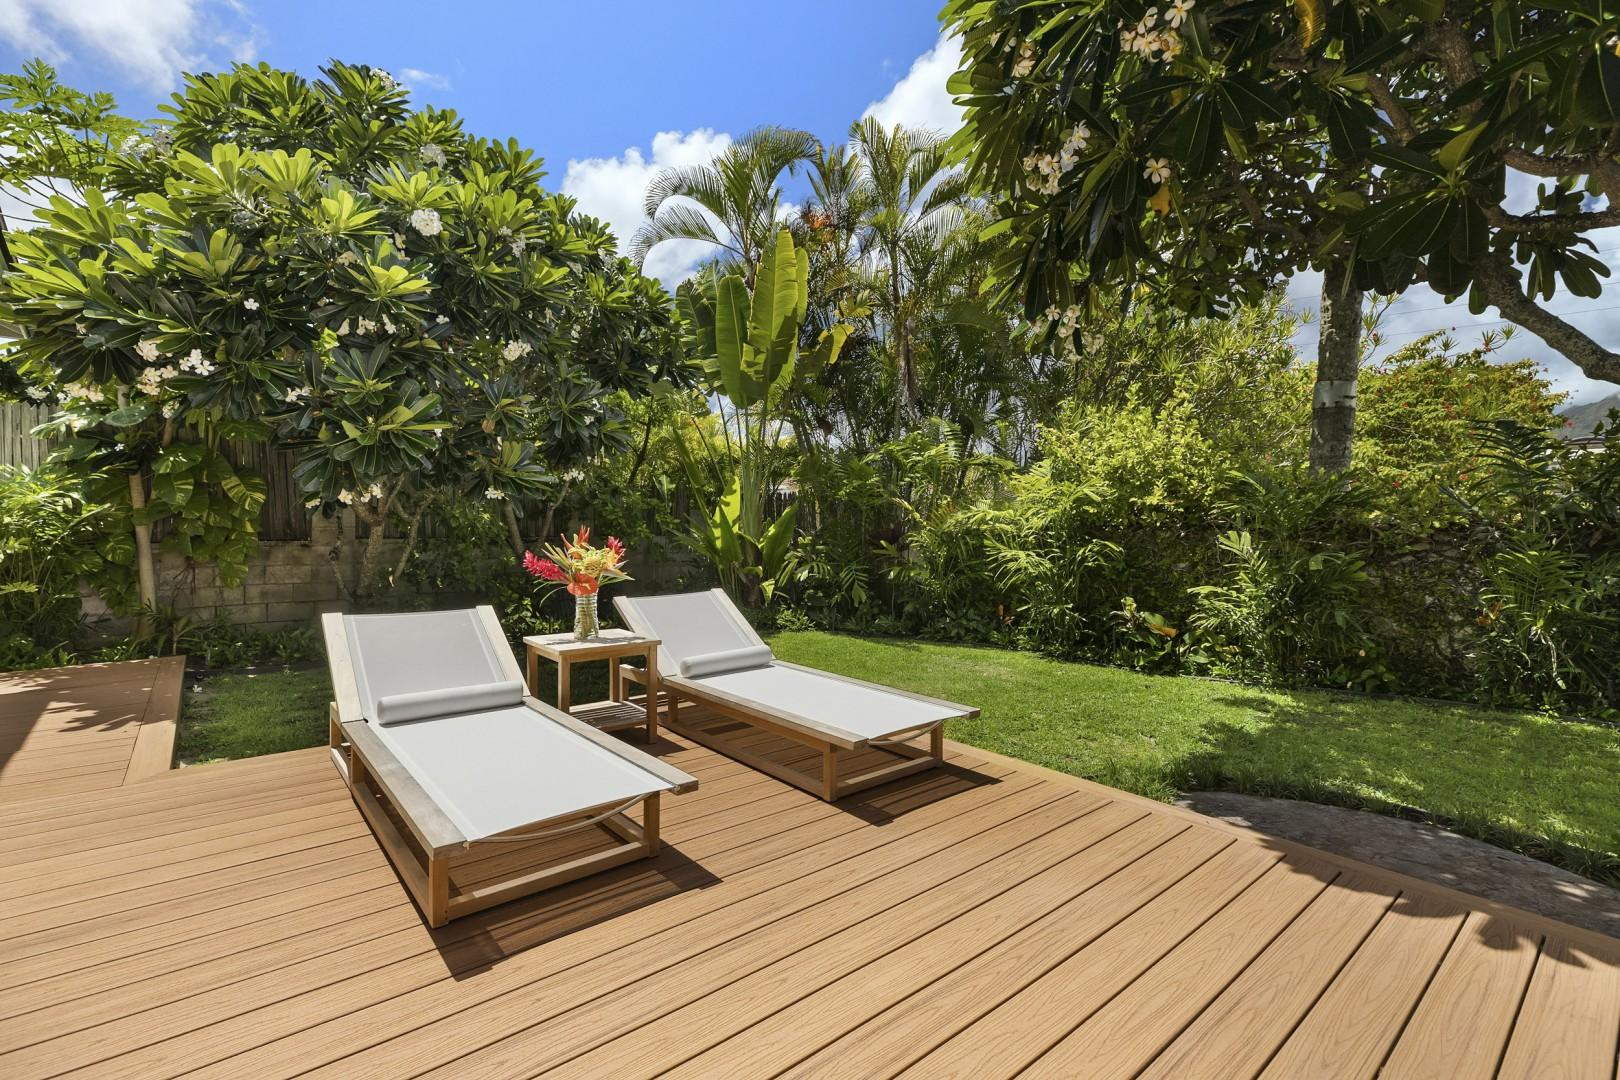 Private Yard with Large Deck and  Chaise Lounge Chairs